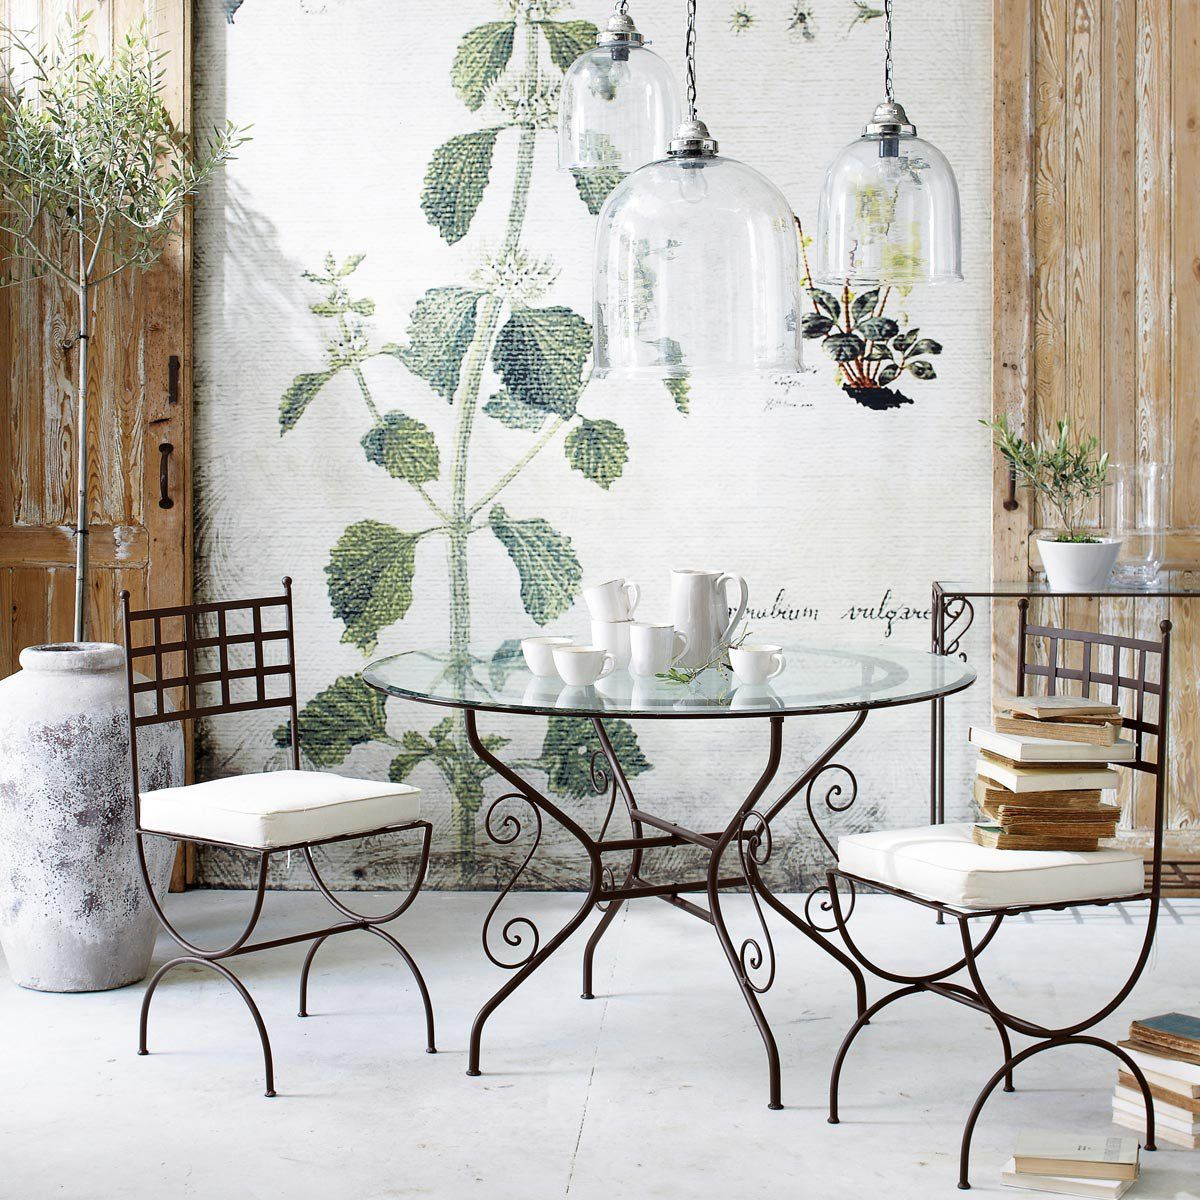 Suspensions Industriel In 2019 Wrought Iron Chairs